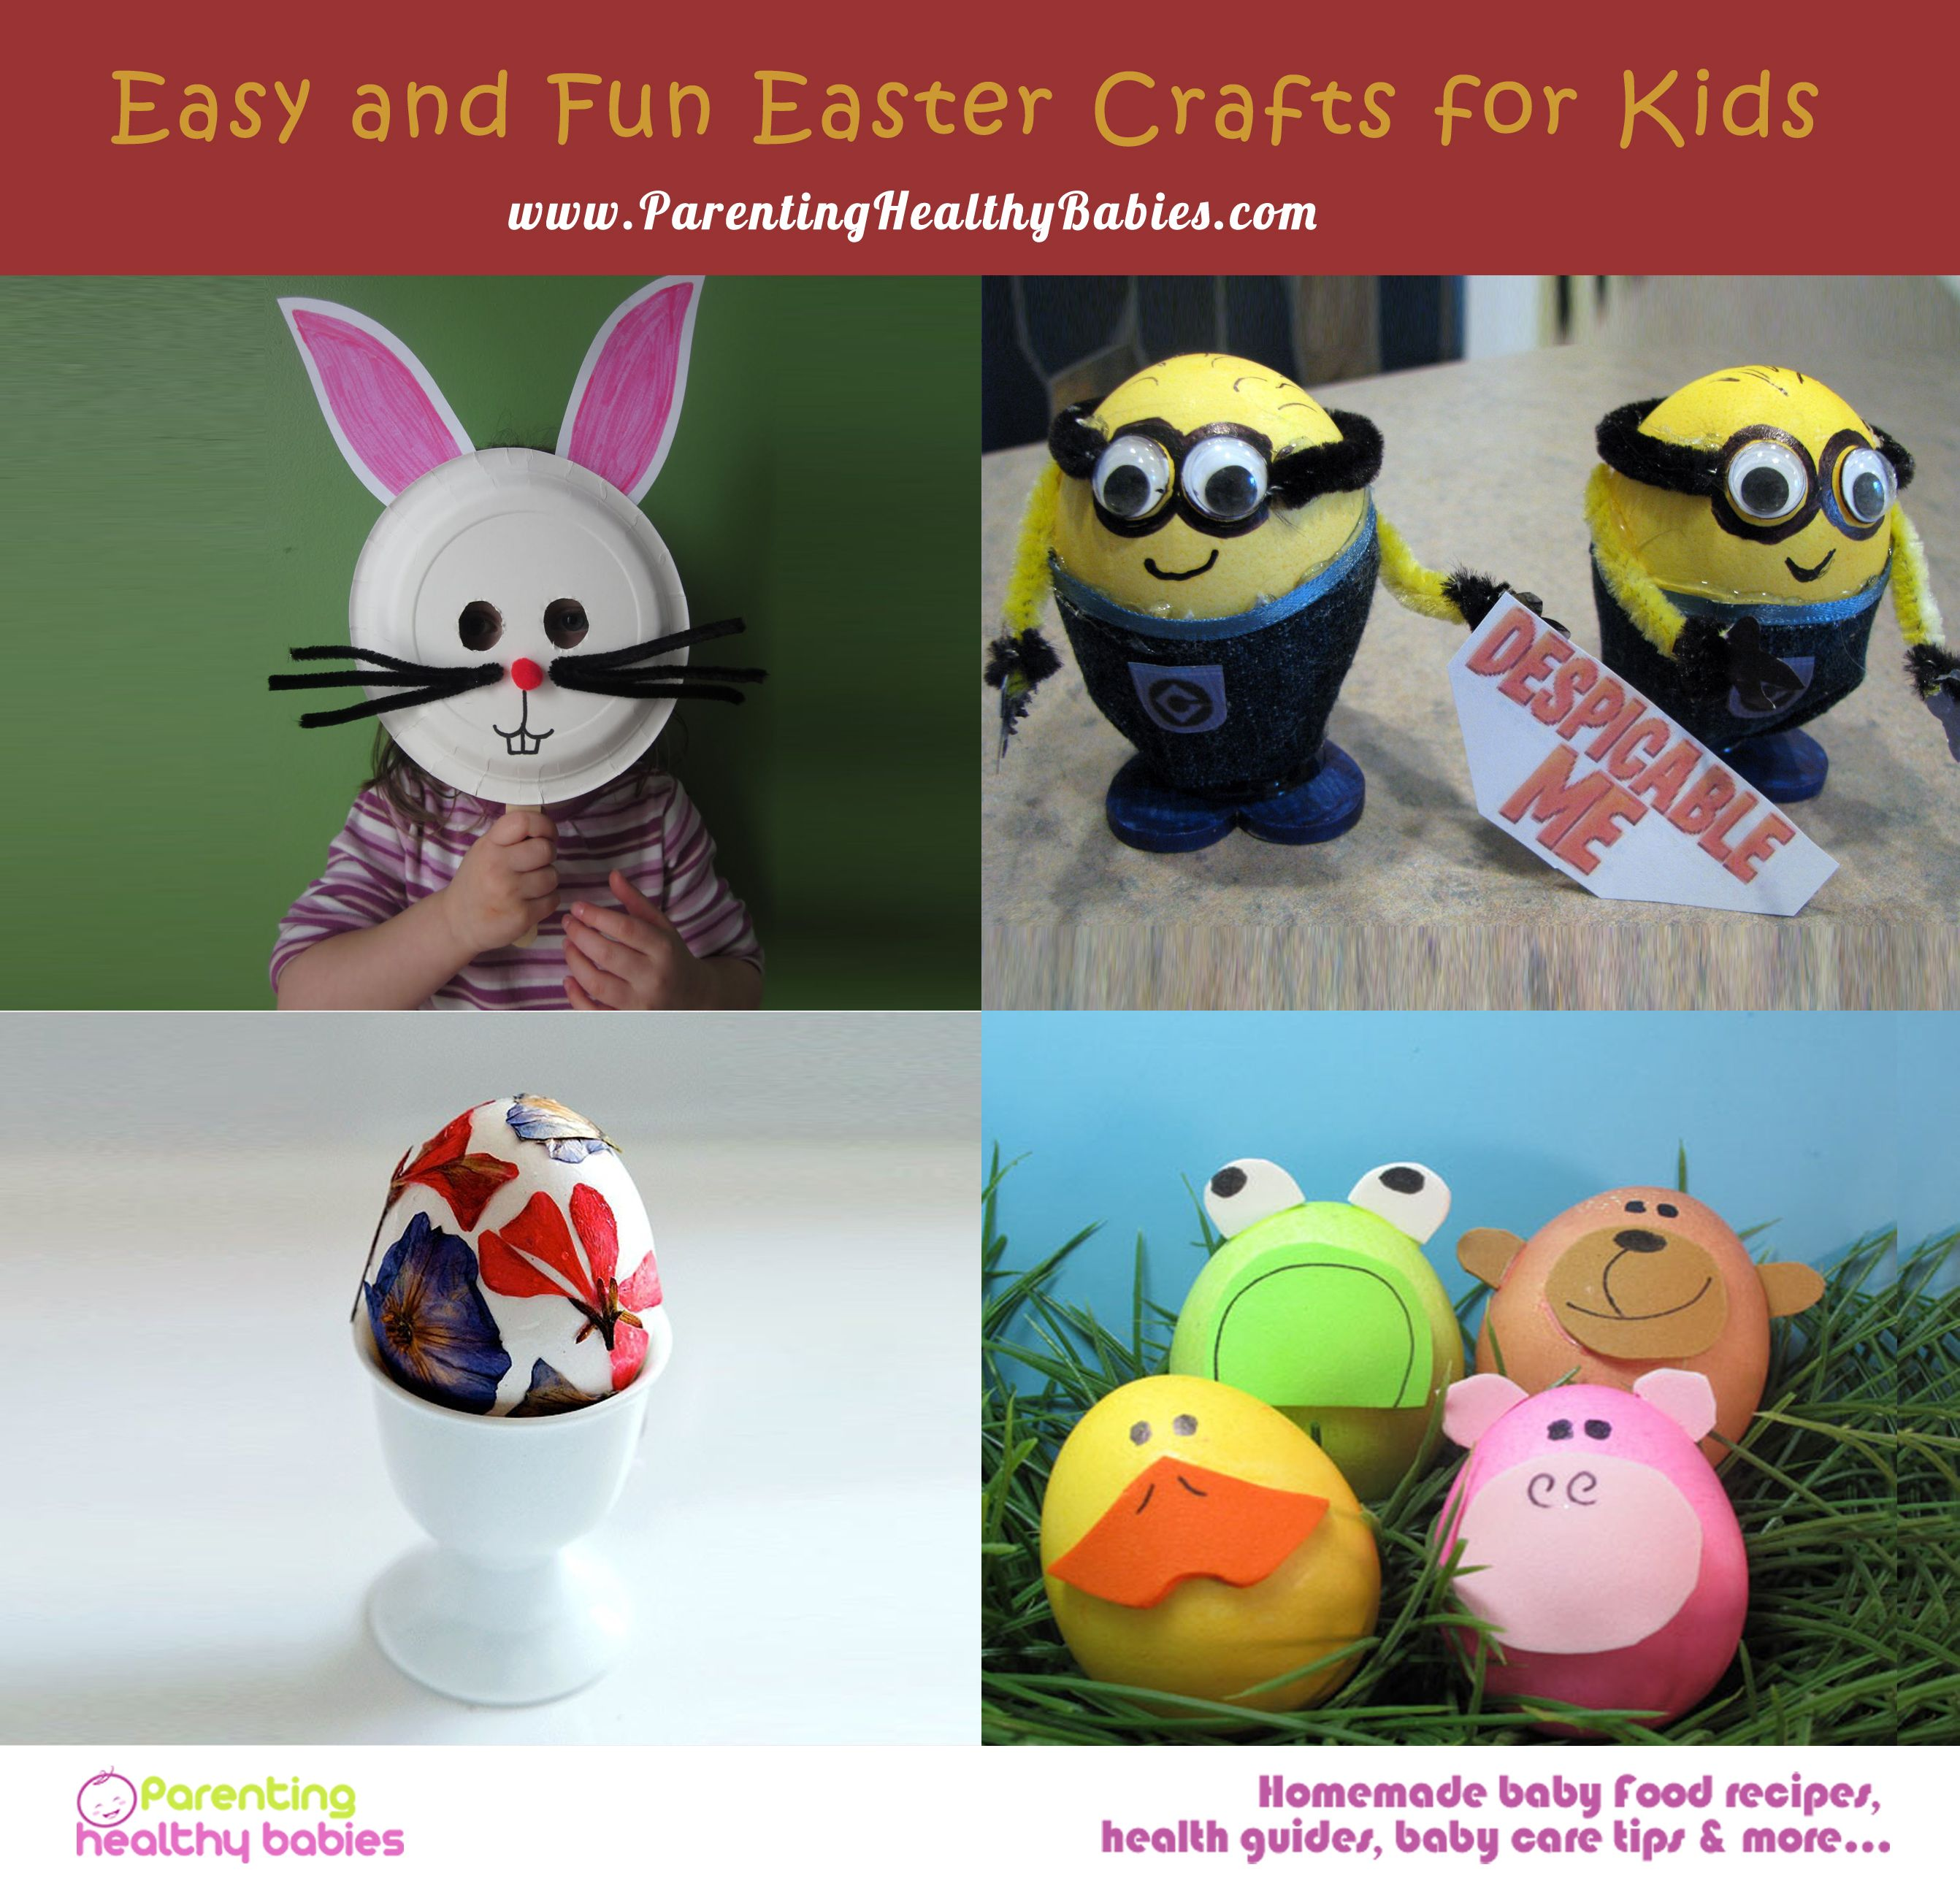 Minion easter eggs httpparentinghealthybabies20 do it minion easter eggs httpparentinghealthybabies20 do it solutioingenieria Image collections